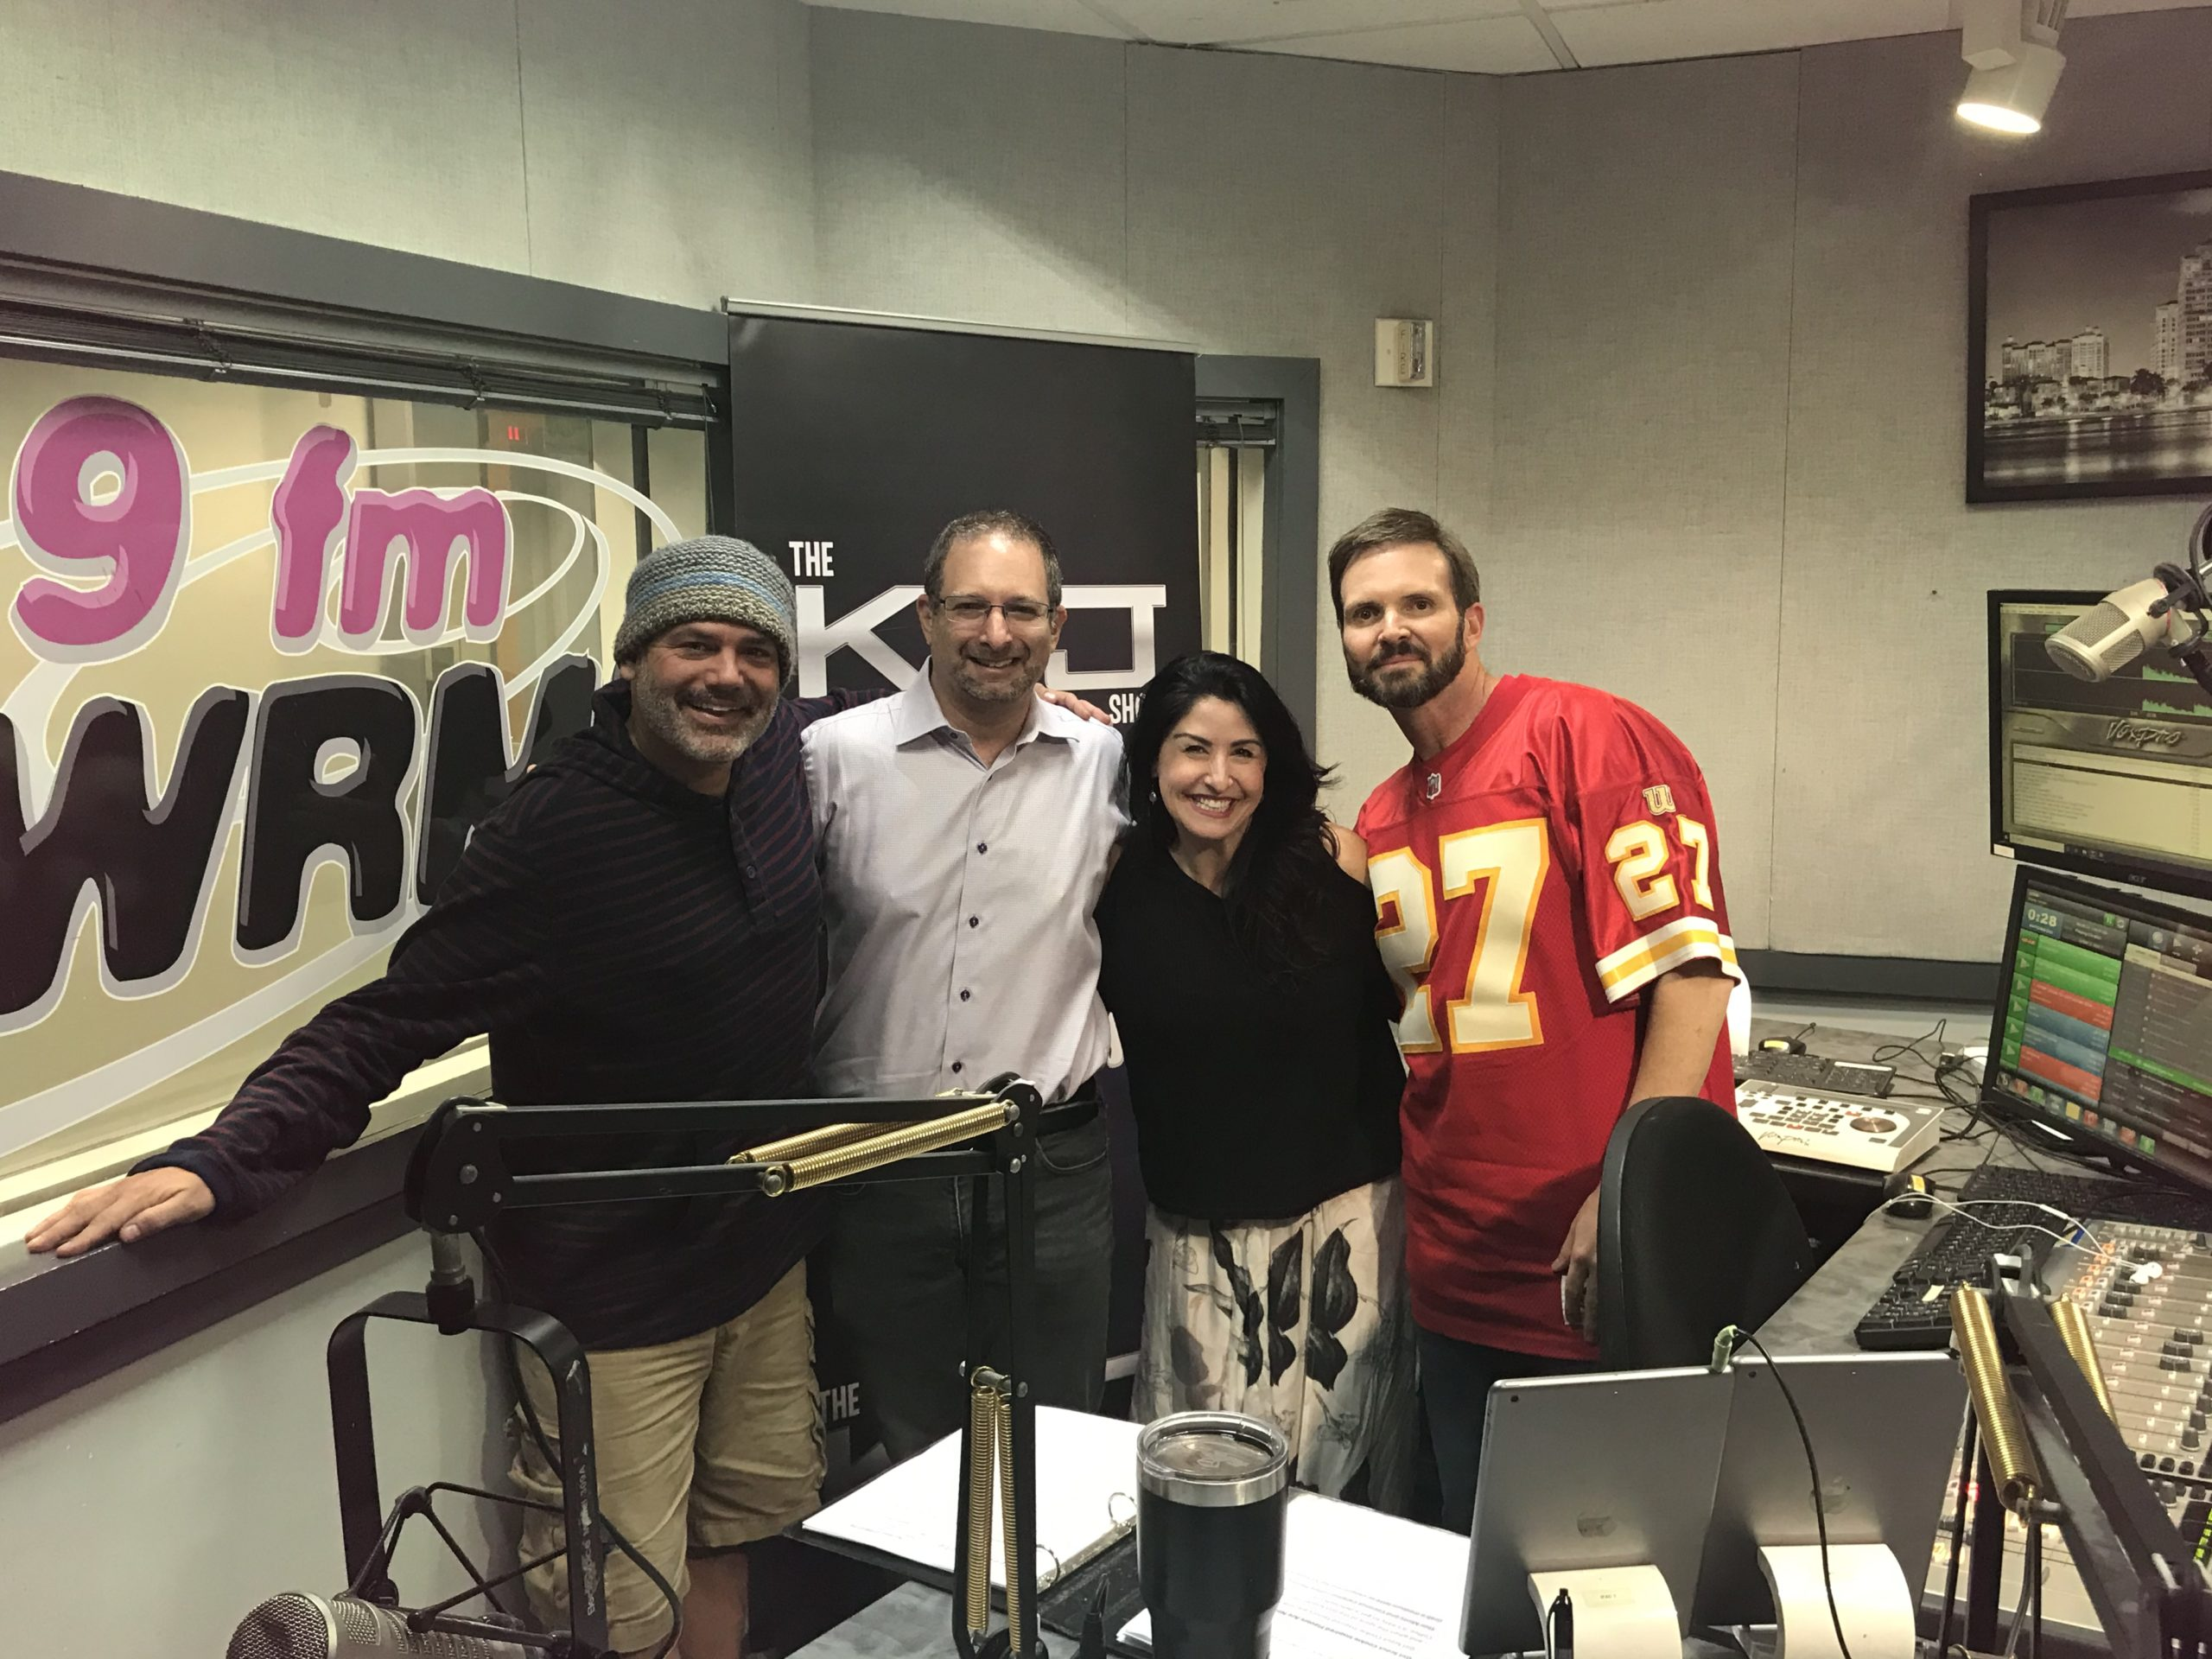 RBR+TVBR Editor-in-Chief Adam R Jacobson (second from left) poses with members of the KVJ Show at WRMF-FM in West Palm Beach in this January 2020 file photo.